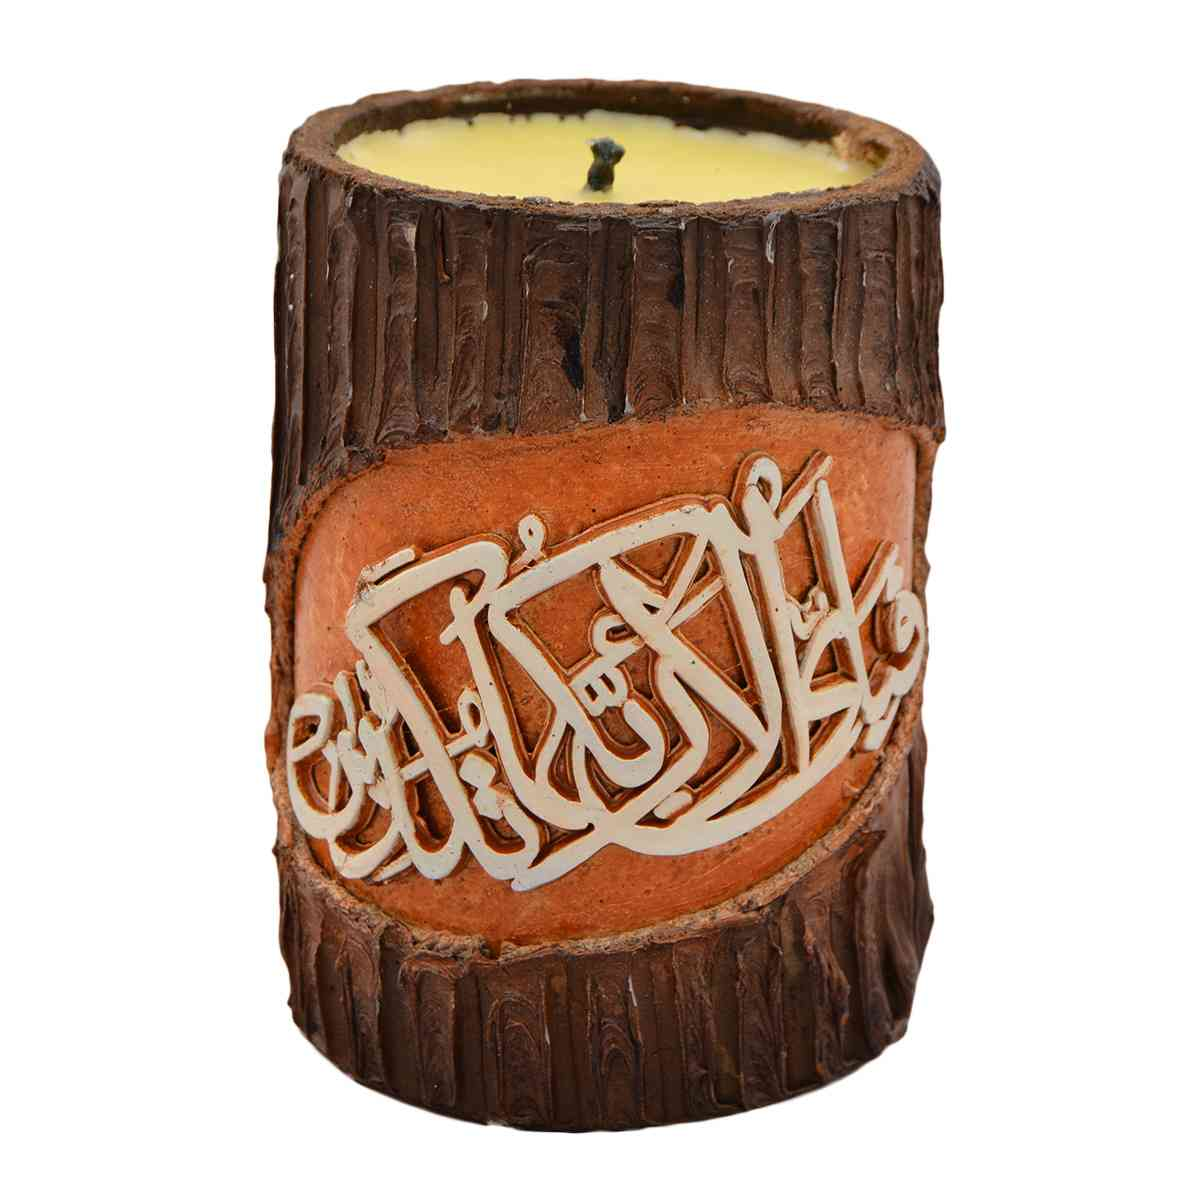 Original Wooden Calligraphic Candle for Room Decoration (Width 3 Inch x Height 5 Inch x Depth 5 Inch)